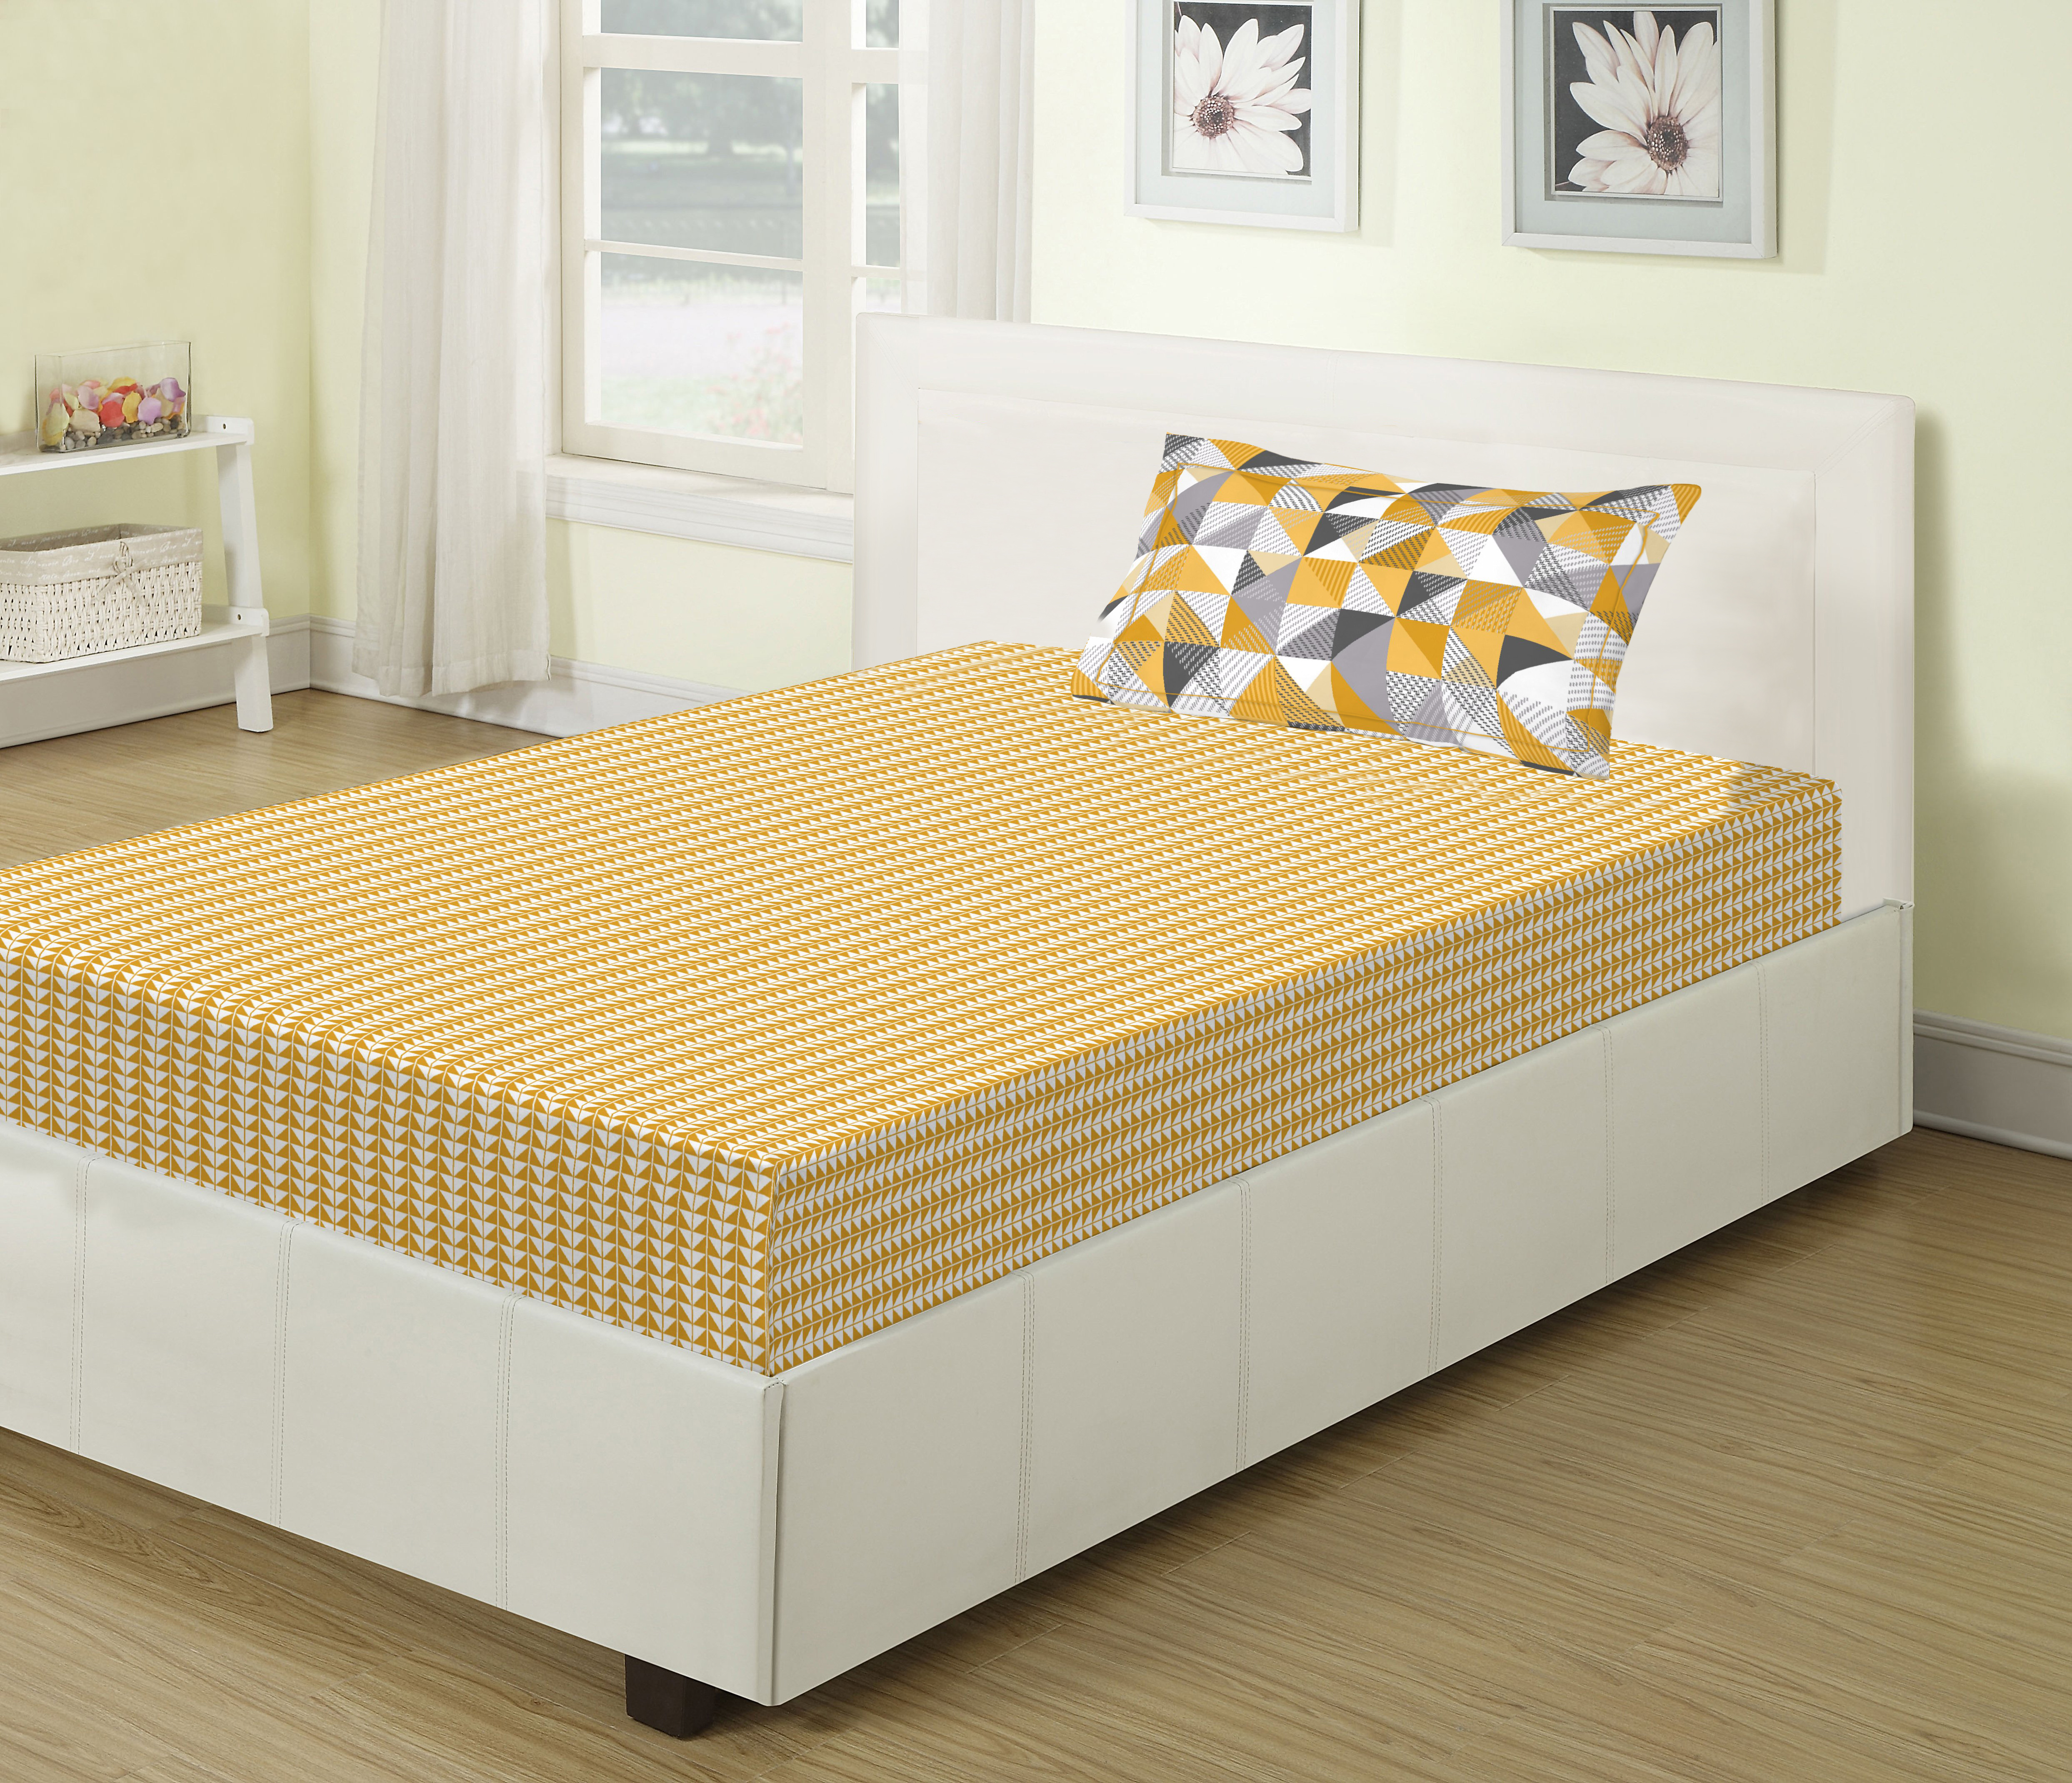 Emilia Cotton Single Bed Sheets in Gold Colour by Living Essence